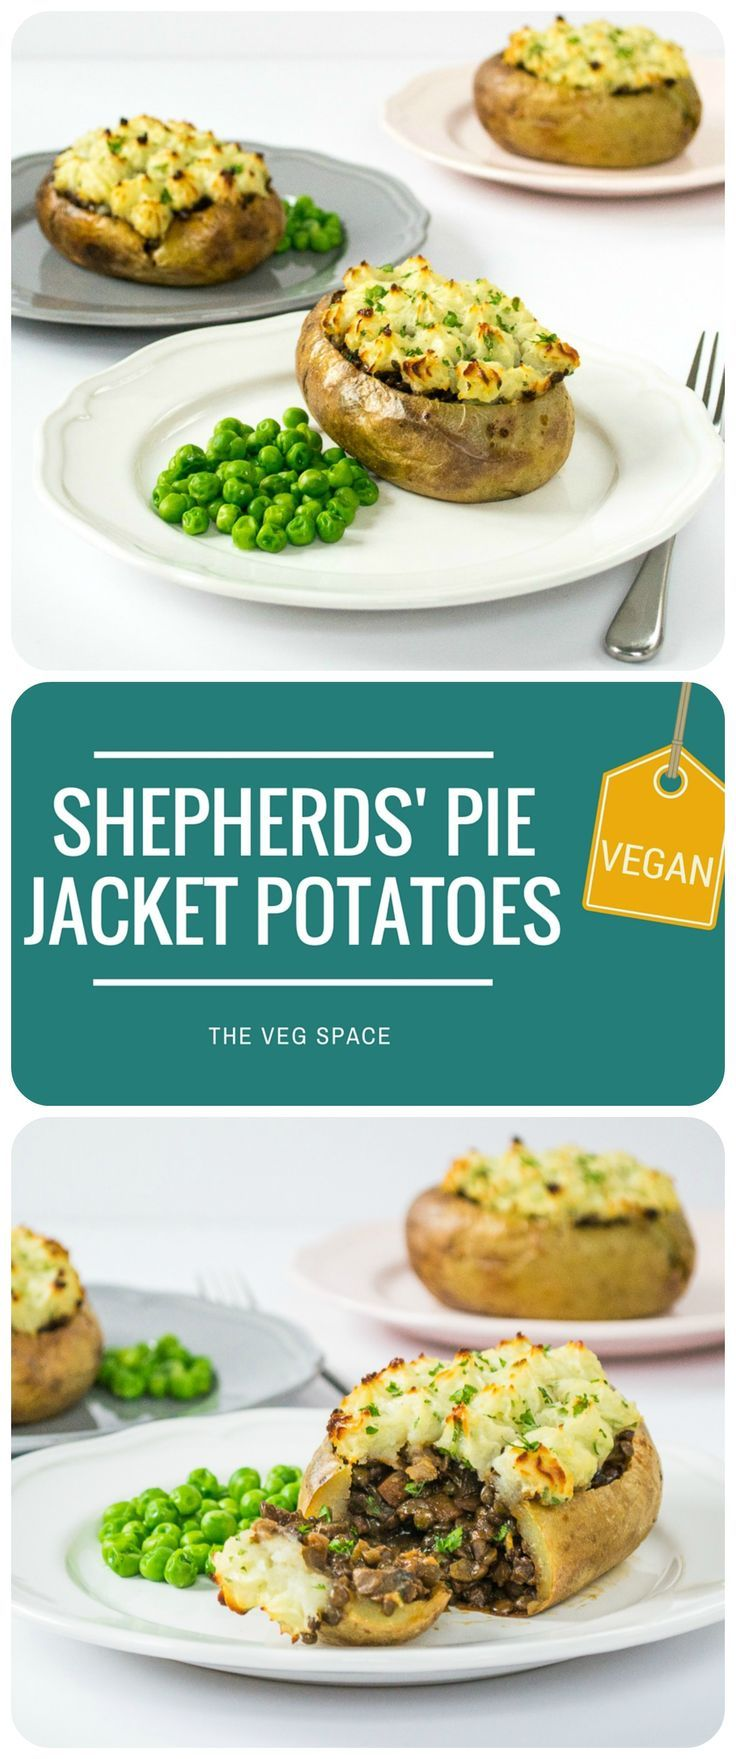 These Veggie Shepherds' Pie Jacket Potatoes are a vegetarian & vegan twist on the great British classic.  With a red wine, puy lentil & mushrooms gravy filling, and light and fluffy mash piped on top.